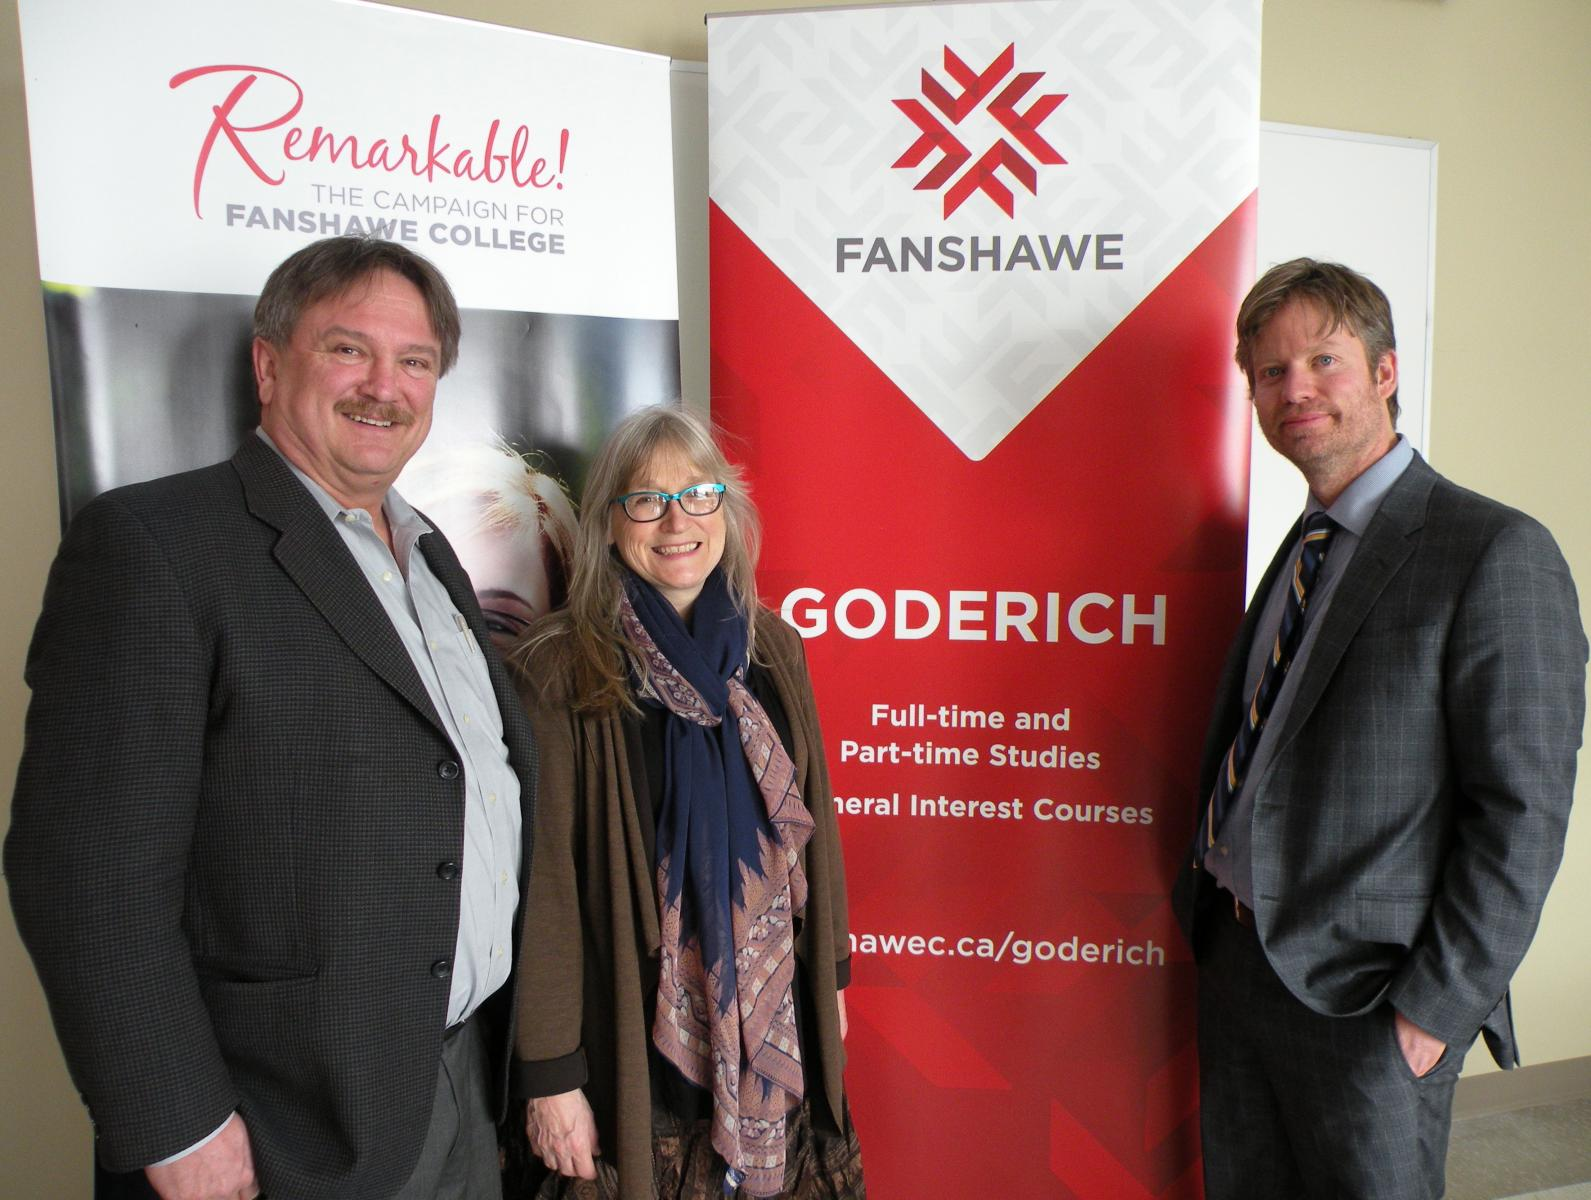 John Grace and Wendy Dell-Grace with Andrew Gunn, Fanshawe College